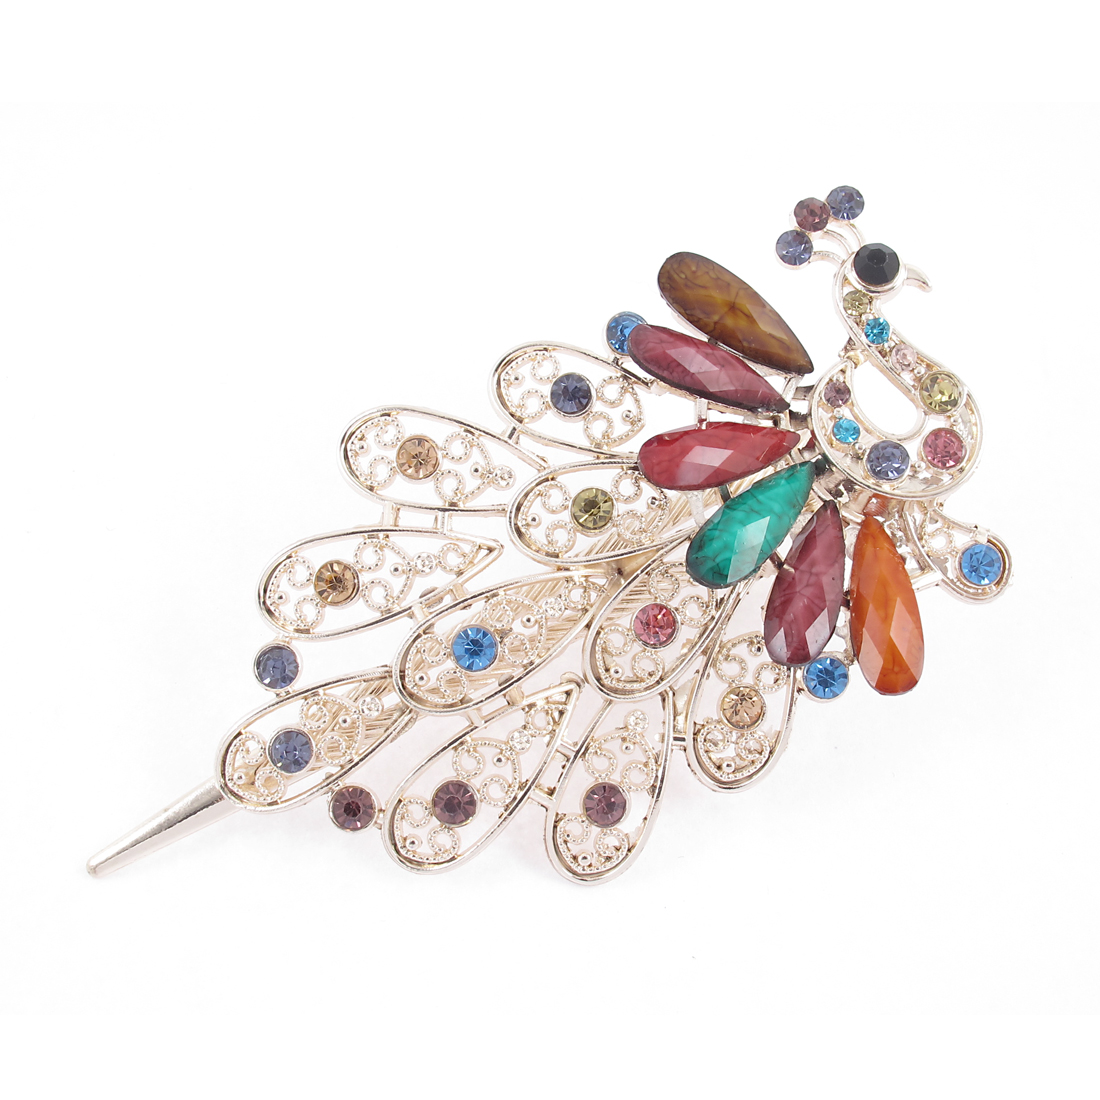 Woman Faux Rhinestone Gemstone Detail Peacock Shape Barrette Hairclip